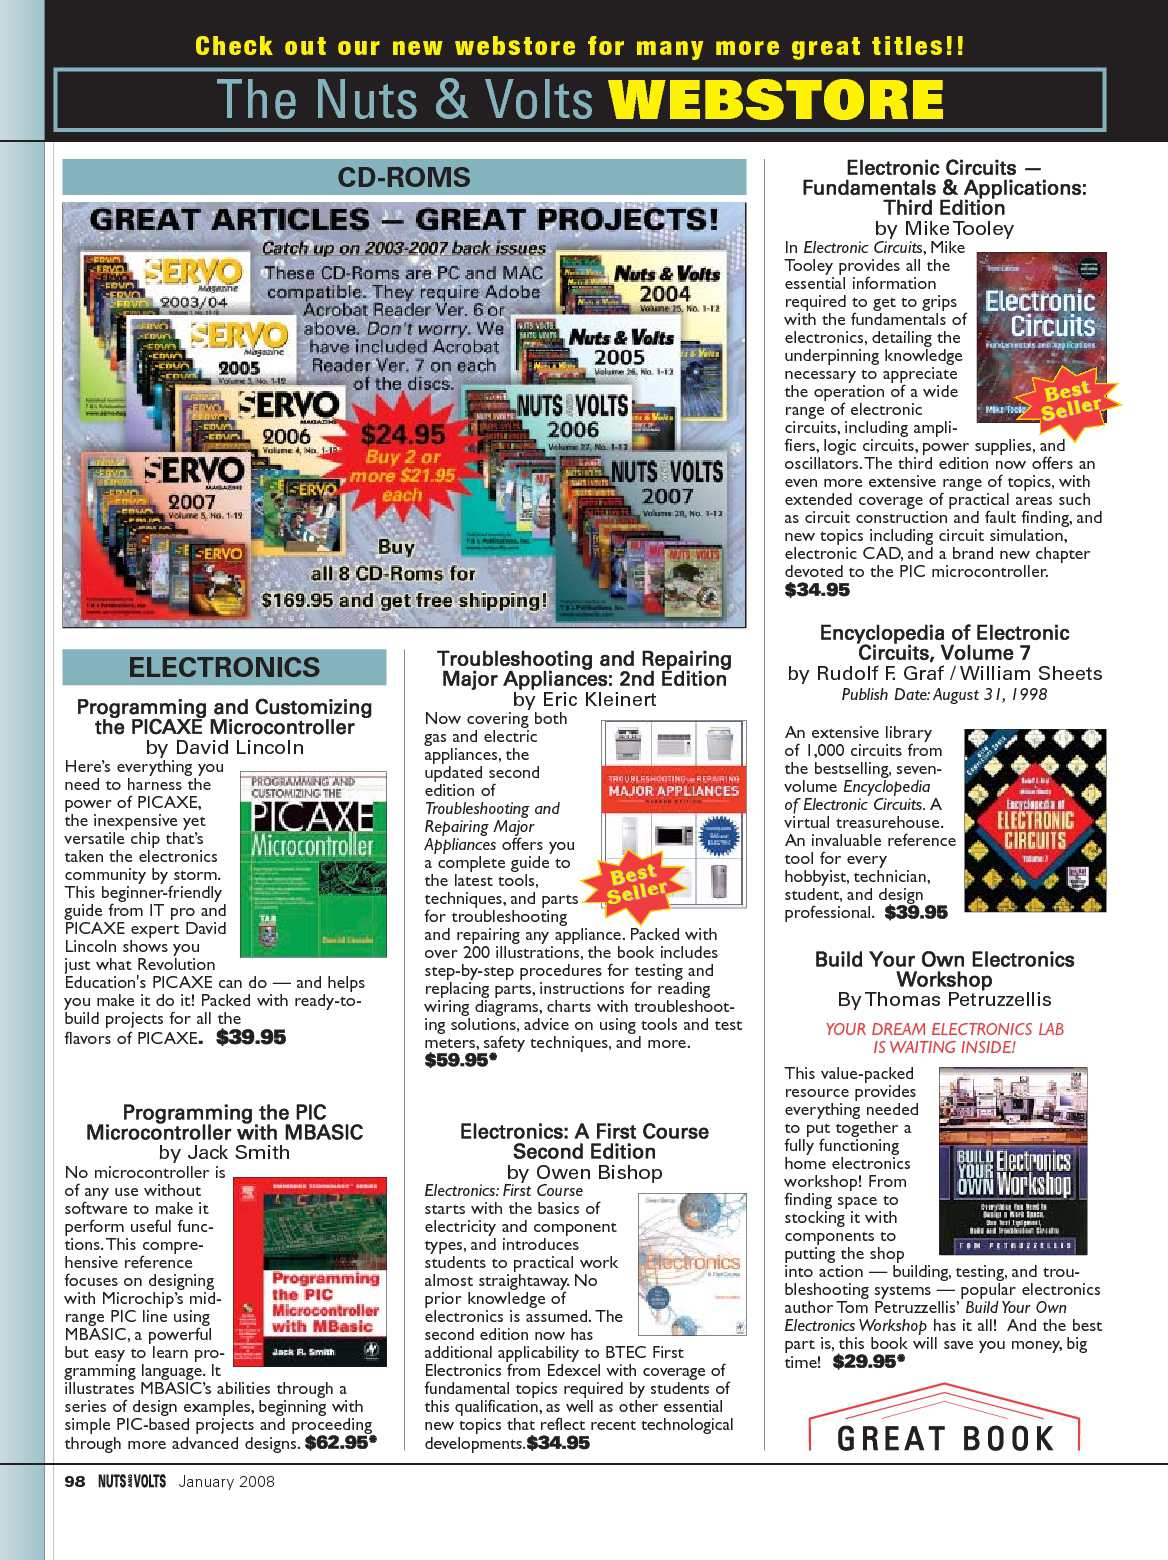 Nuts And Volts 01 2008 Calameo Downloader Build Electronic Circuit Online Page 98